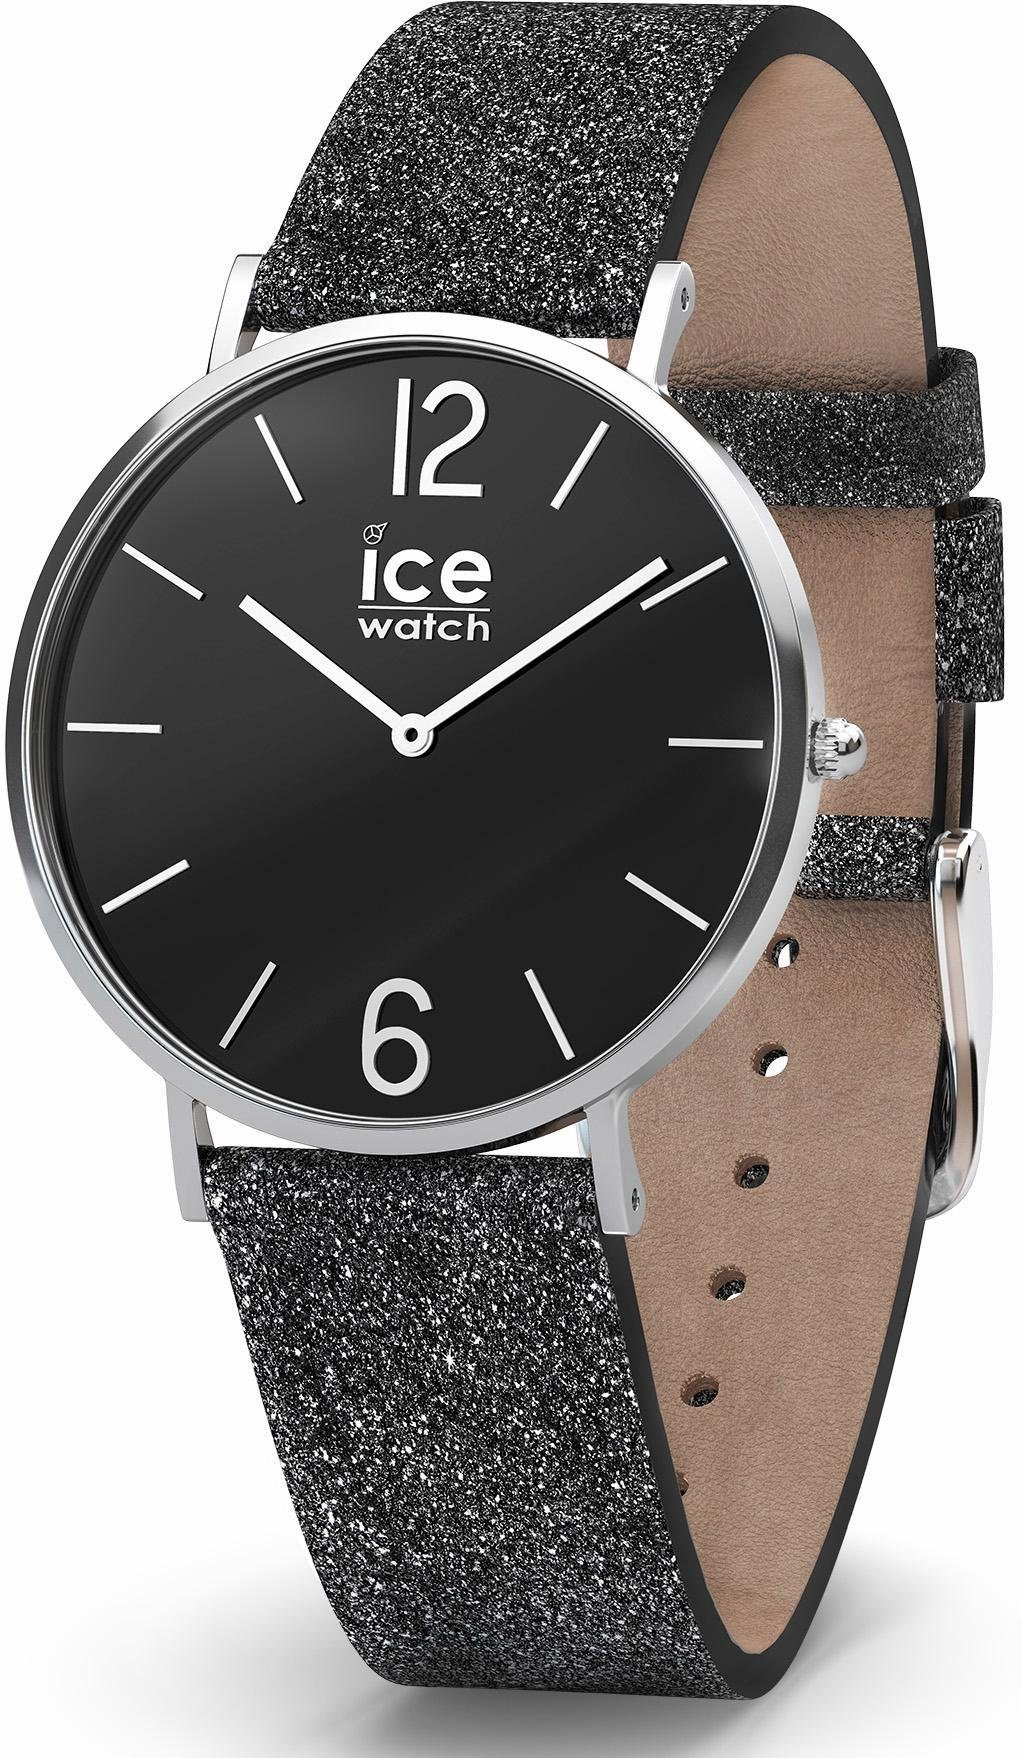 ice-watch Quarzuhr »CITY sparkling - Glitter Black - Small - 2H, 015088« mit glitter Armband